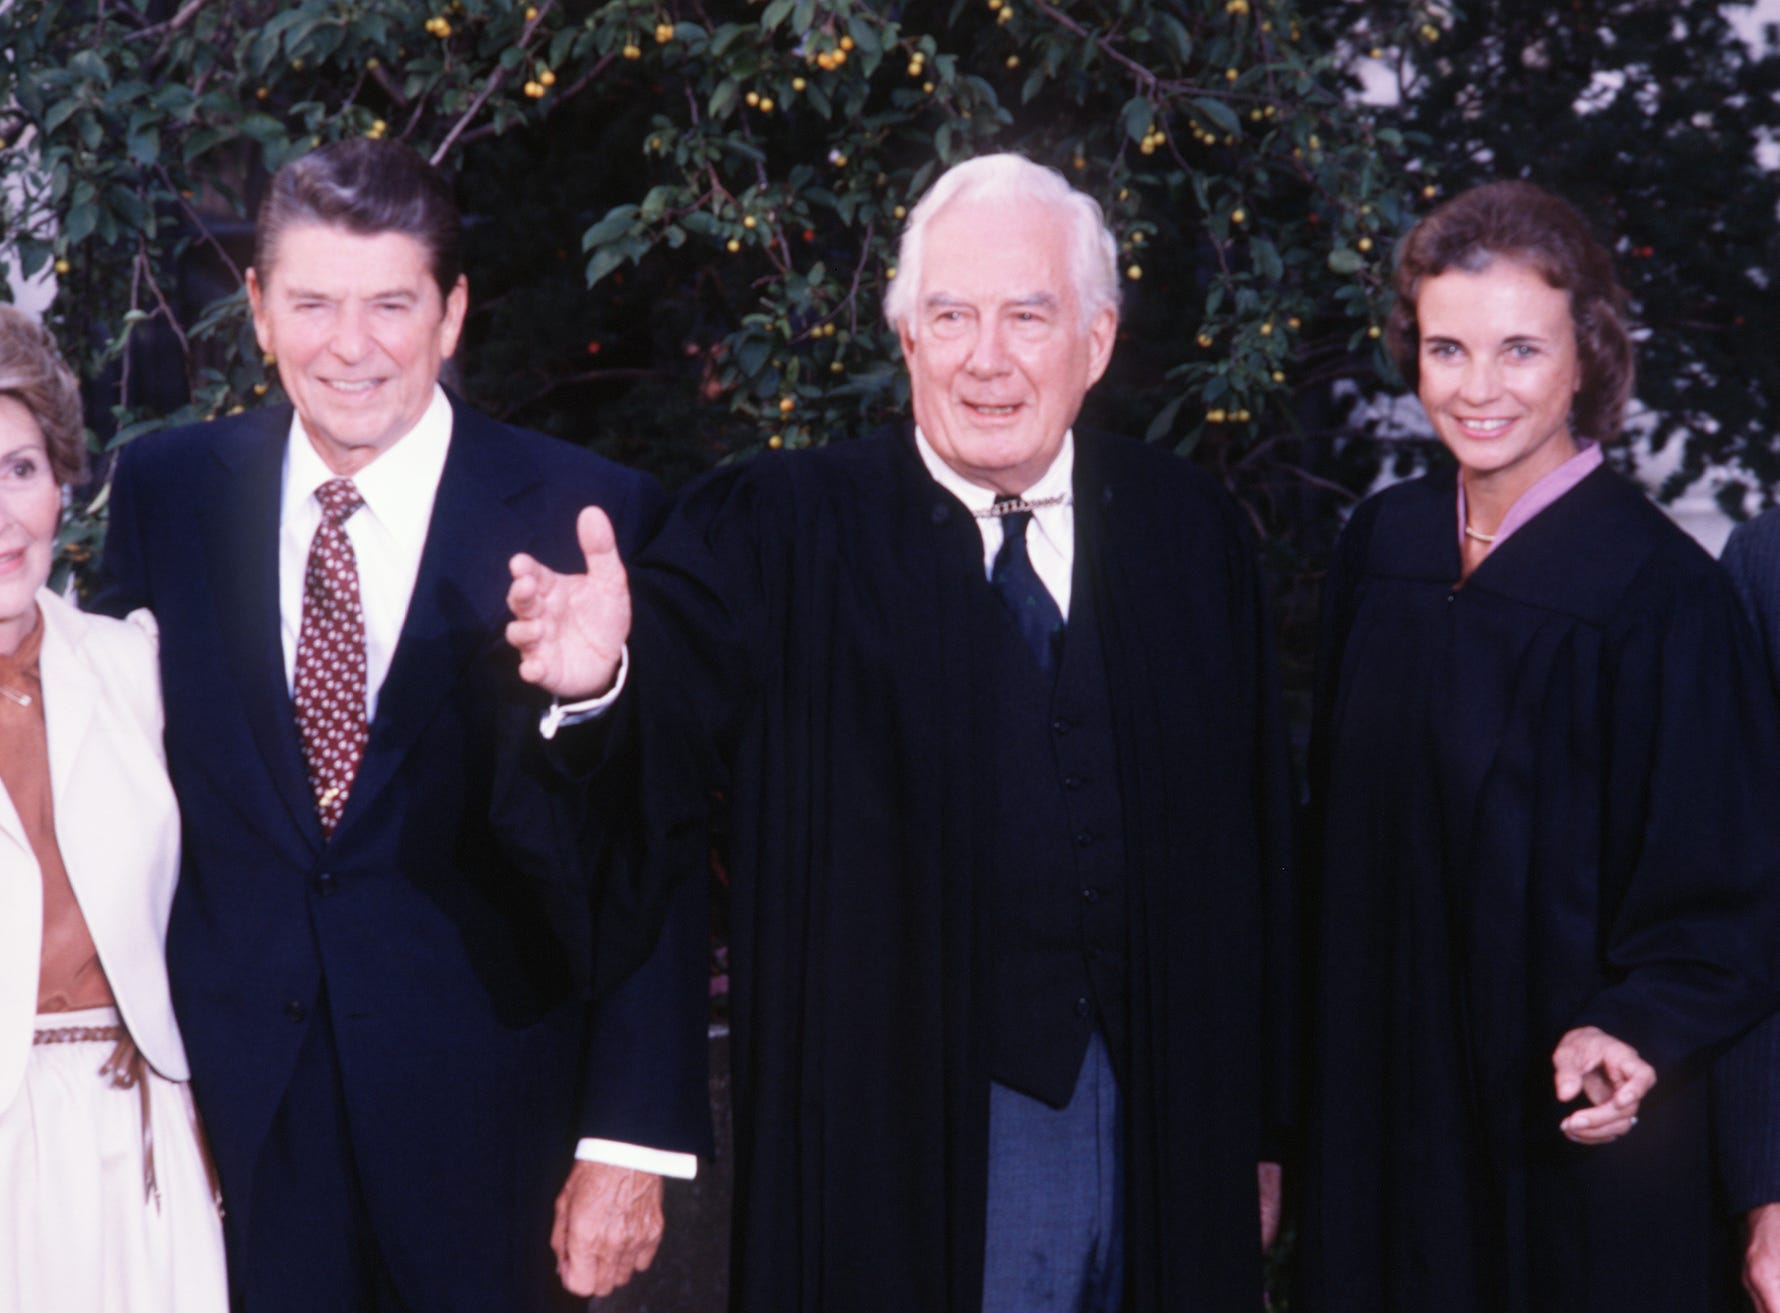 Sandra Day O'Connor, Associate Justice of the Supreme Court, second from right, poses with President Ronald Reagan and first lady Nancy Reagan, right, and Chief Justice Warren Burger following her swearing in at the Supreme Court in Washington, Sept. 25, 1981.  O'Connor's husband, John O'Connor, is seen at far right. O'Connor.